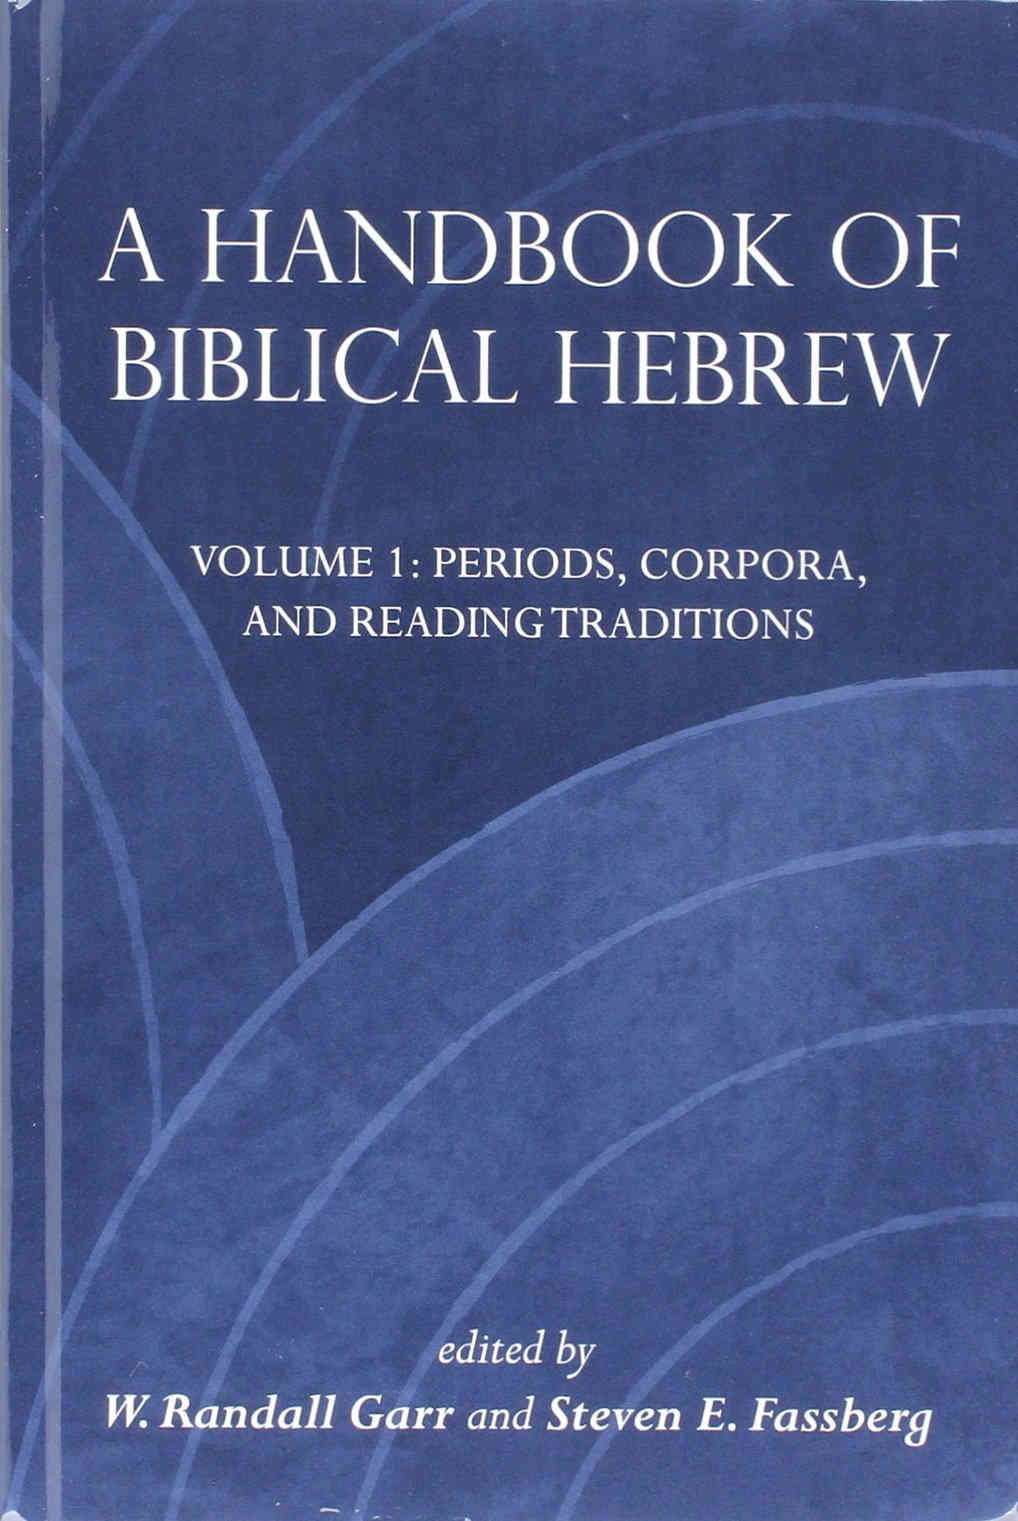 GARR, W. R. ; FASSBERG, S. E. (eds.) A Handbook of Biblical Hebrew. Volume 1: Periods, Corpora, and Reading Traditions; Volume II: Selected Texts. Winona Lake, IN: Eisenbrauns, 2016, 370 p.